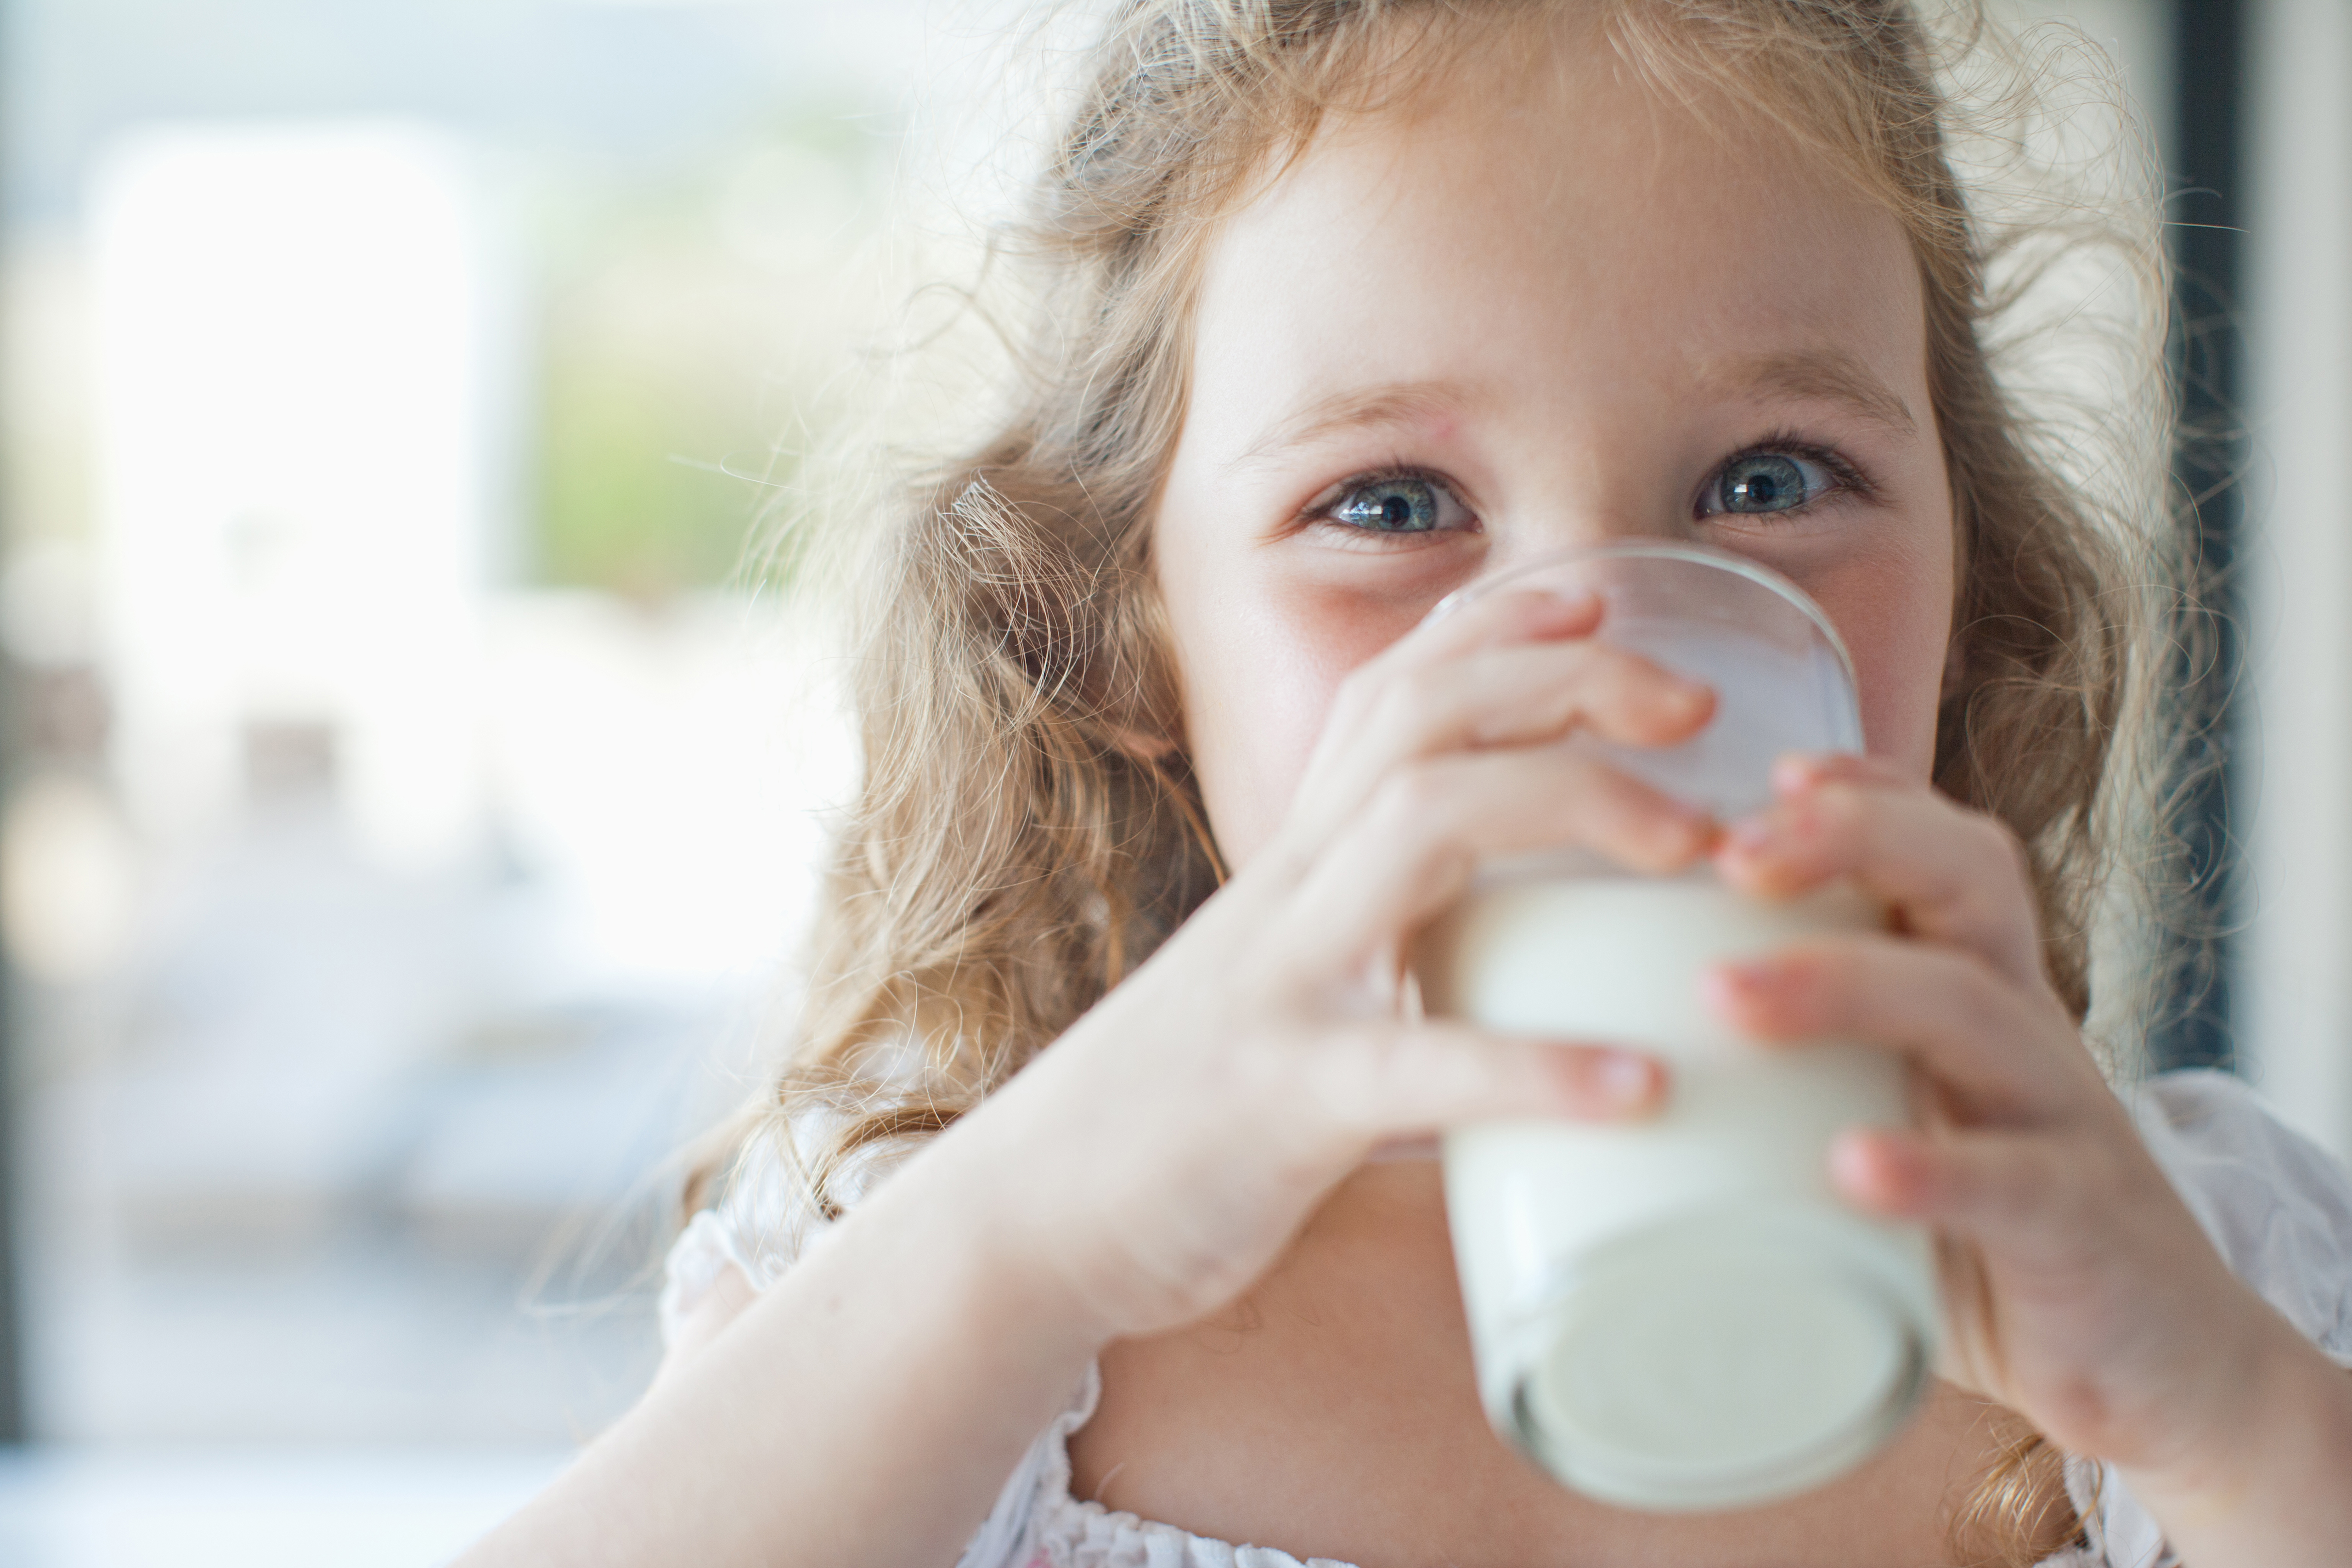 Article image for 'If consumers really knew': Push for new levy on milk in Australia